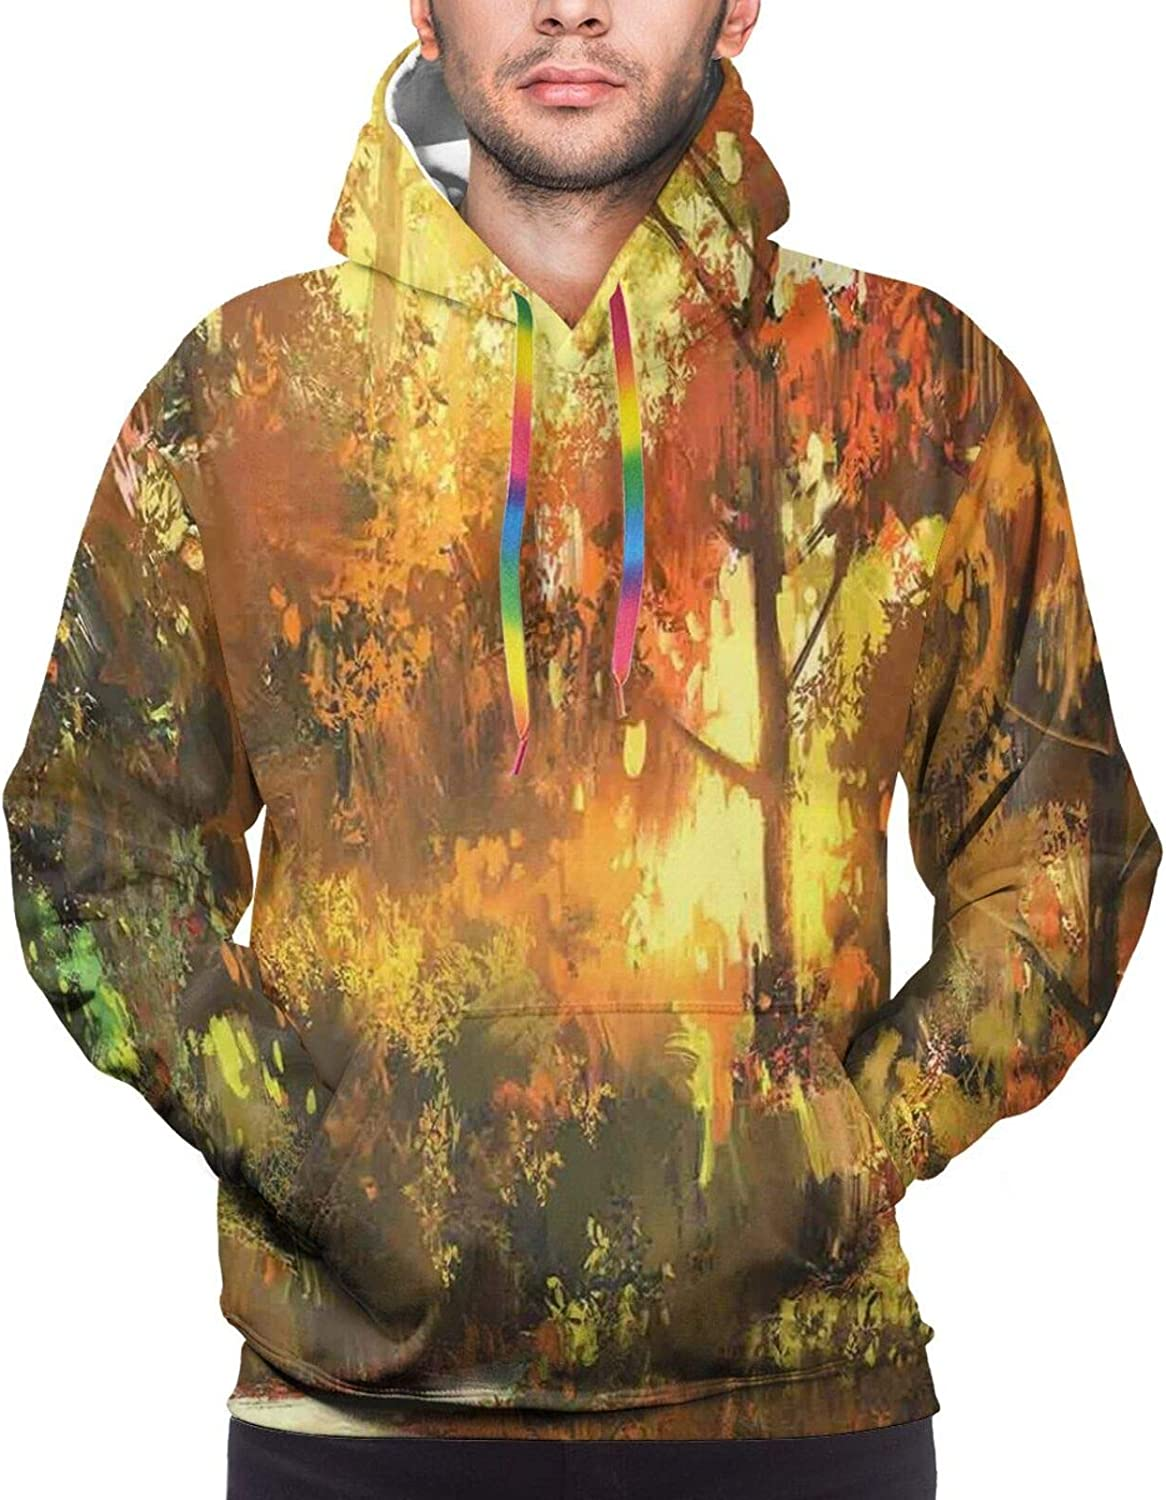 Men's Hoodies Sweatshirts,Pathway in Autumn Forest with Shady Leaf of Deciduous Trees View